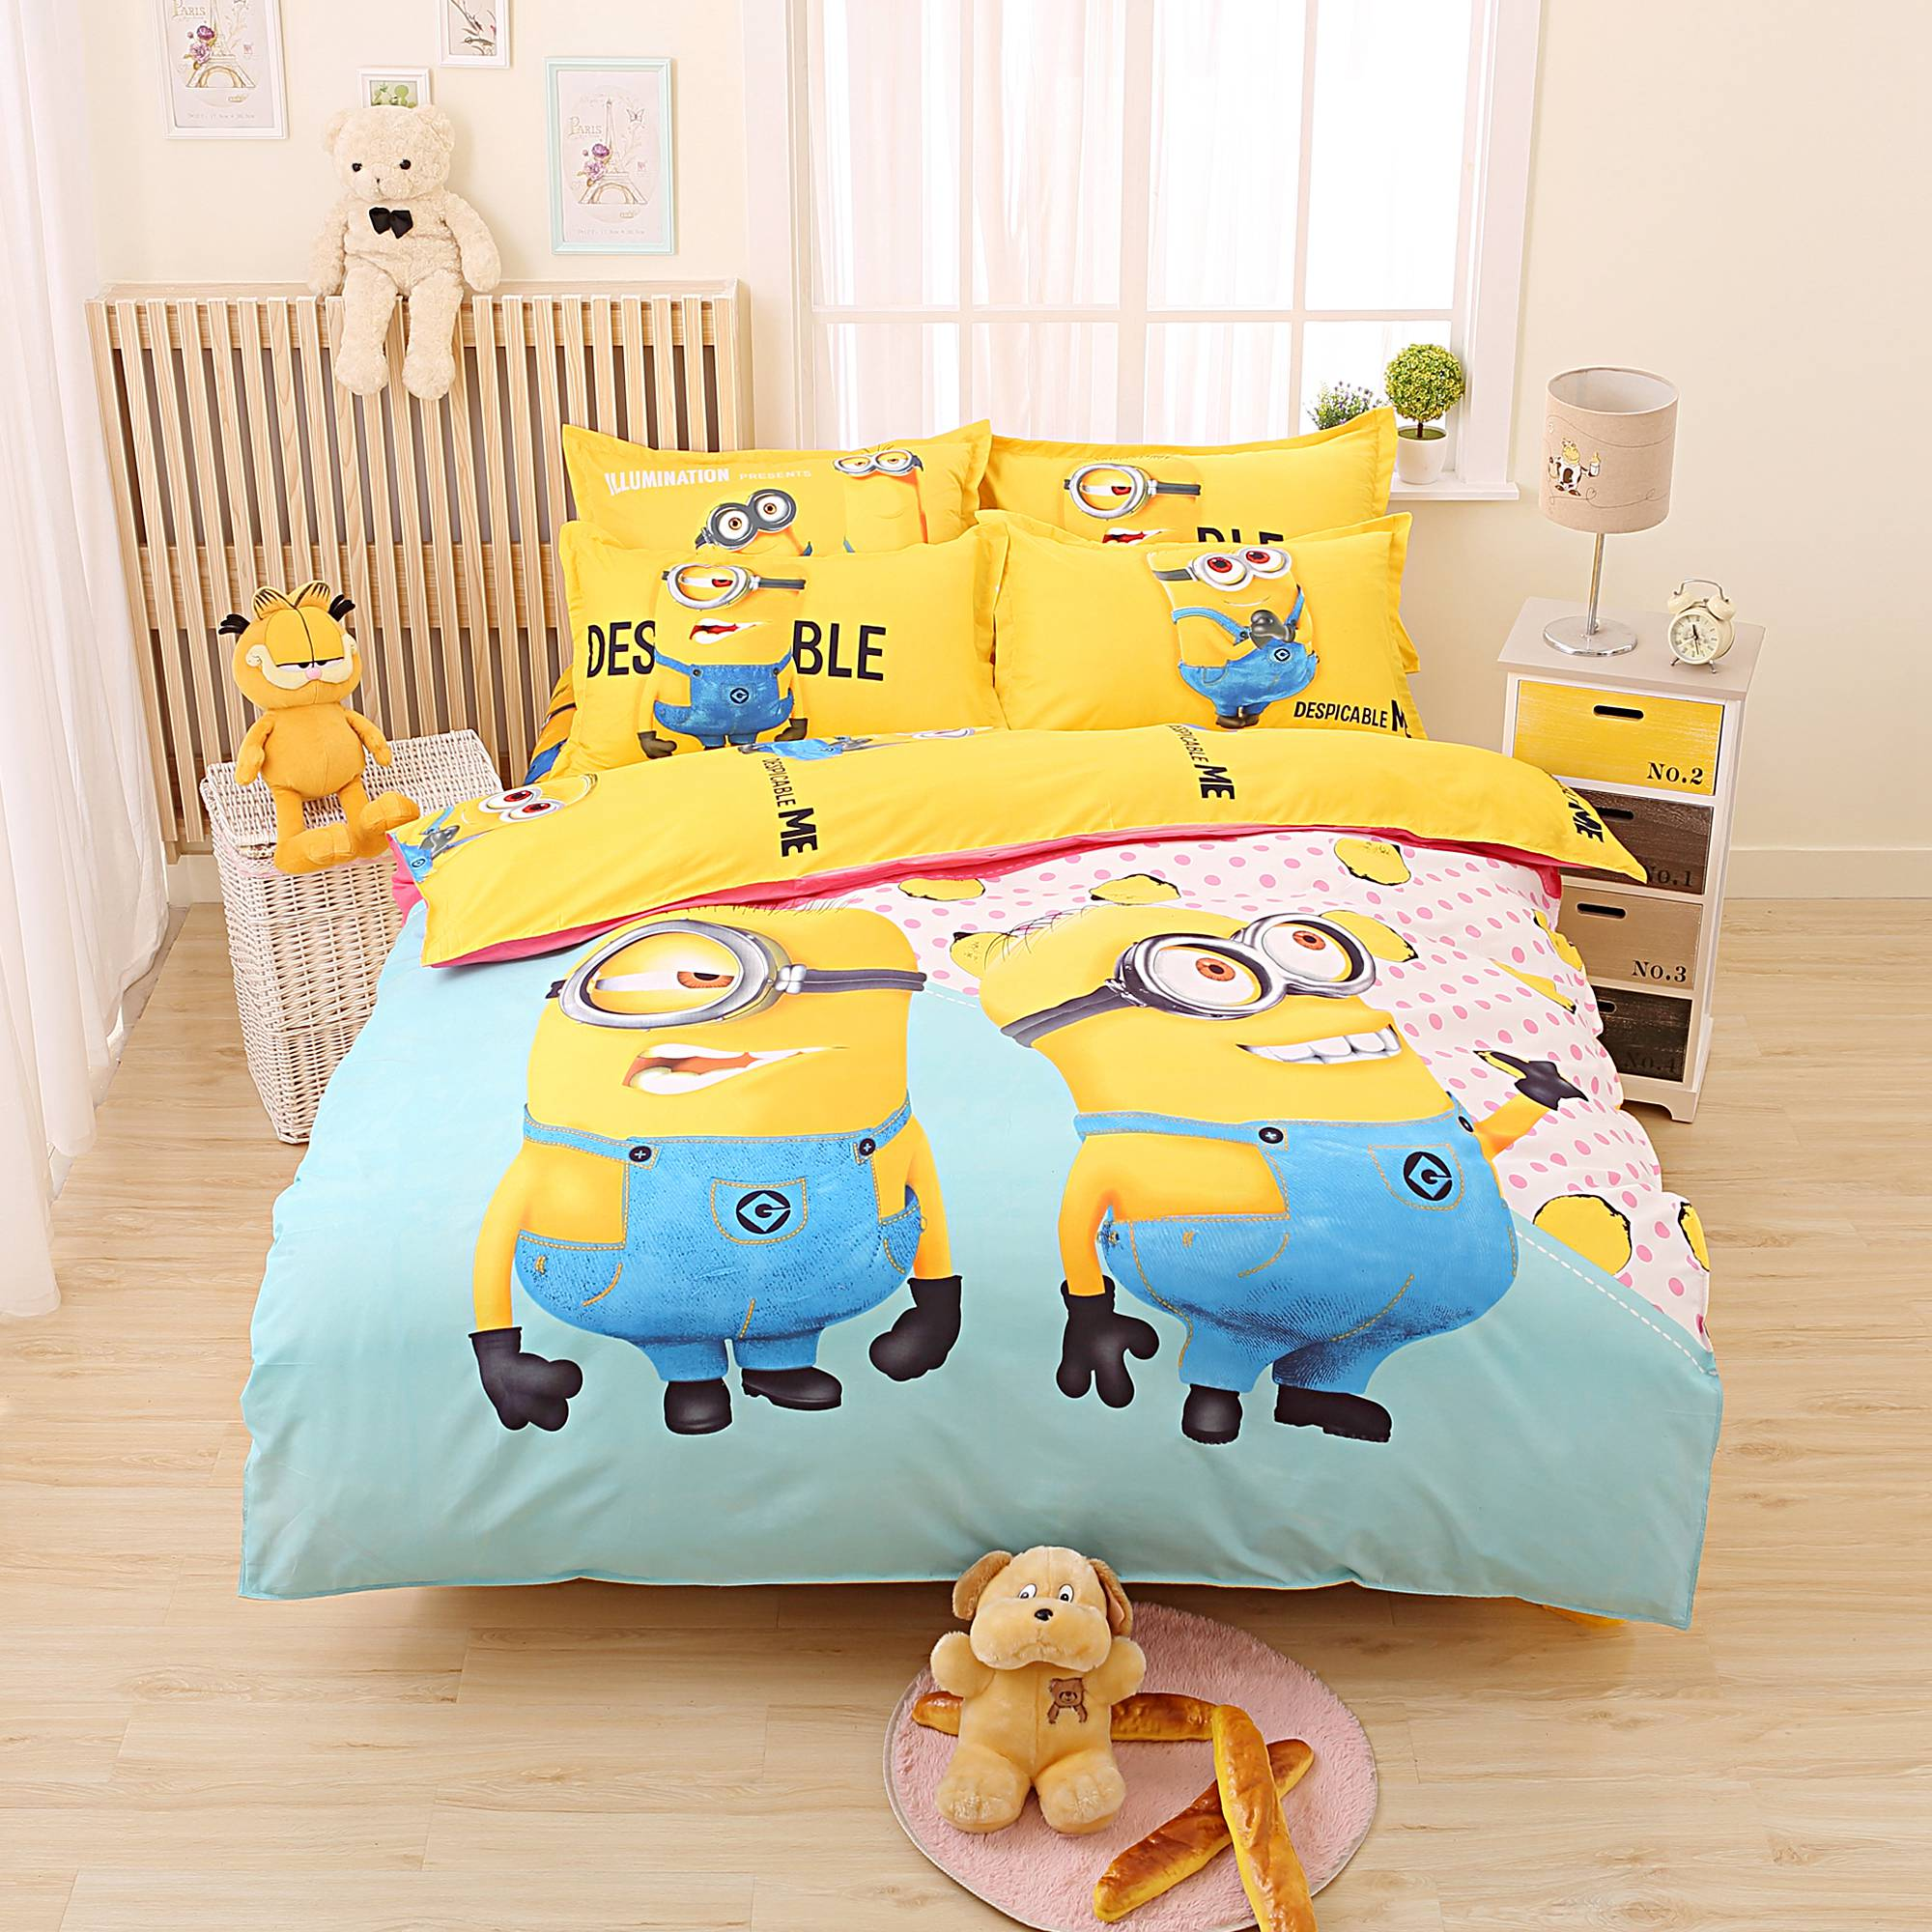 Cartoon 3d Minions Bedding Set Despicable Me 2 Hello Kitty Bed Linen for Kids 4pcs Bedding Duvet Cover Set with Sheet Pillowcase(China (Mainland))